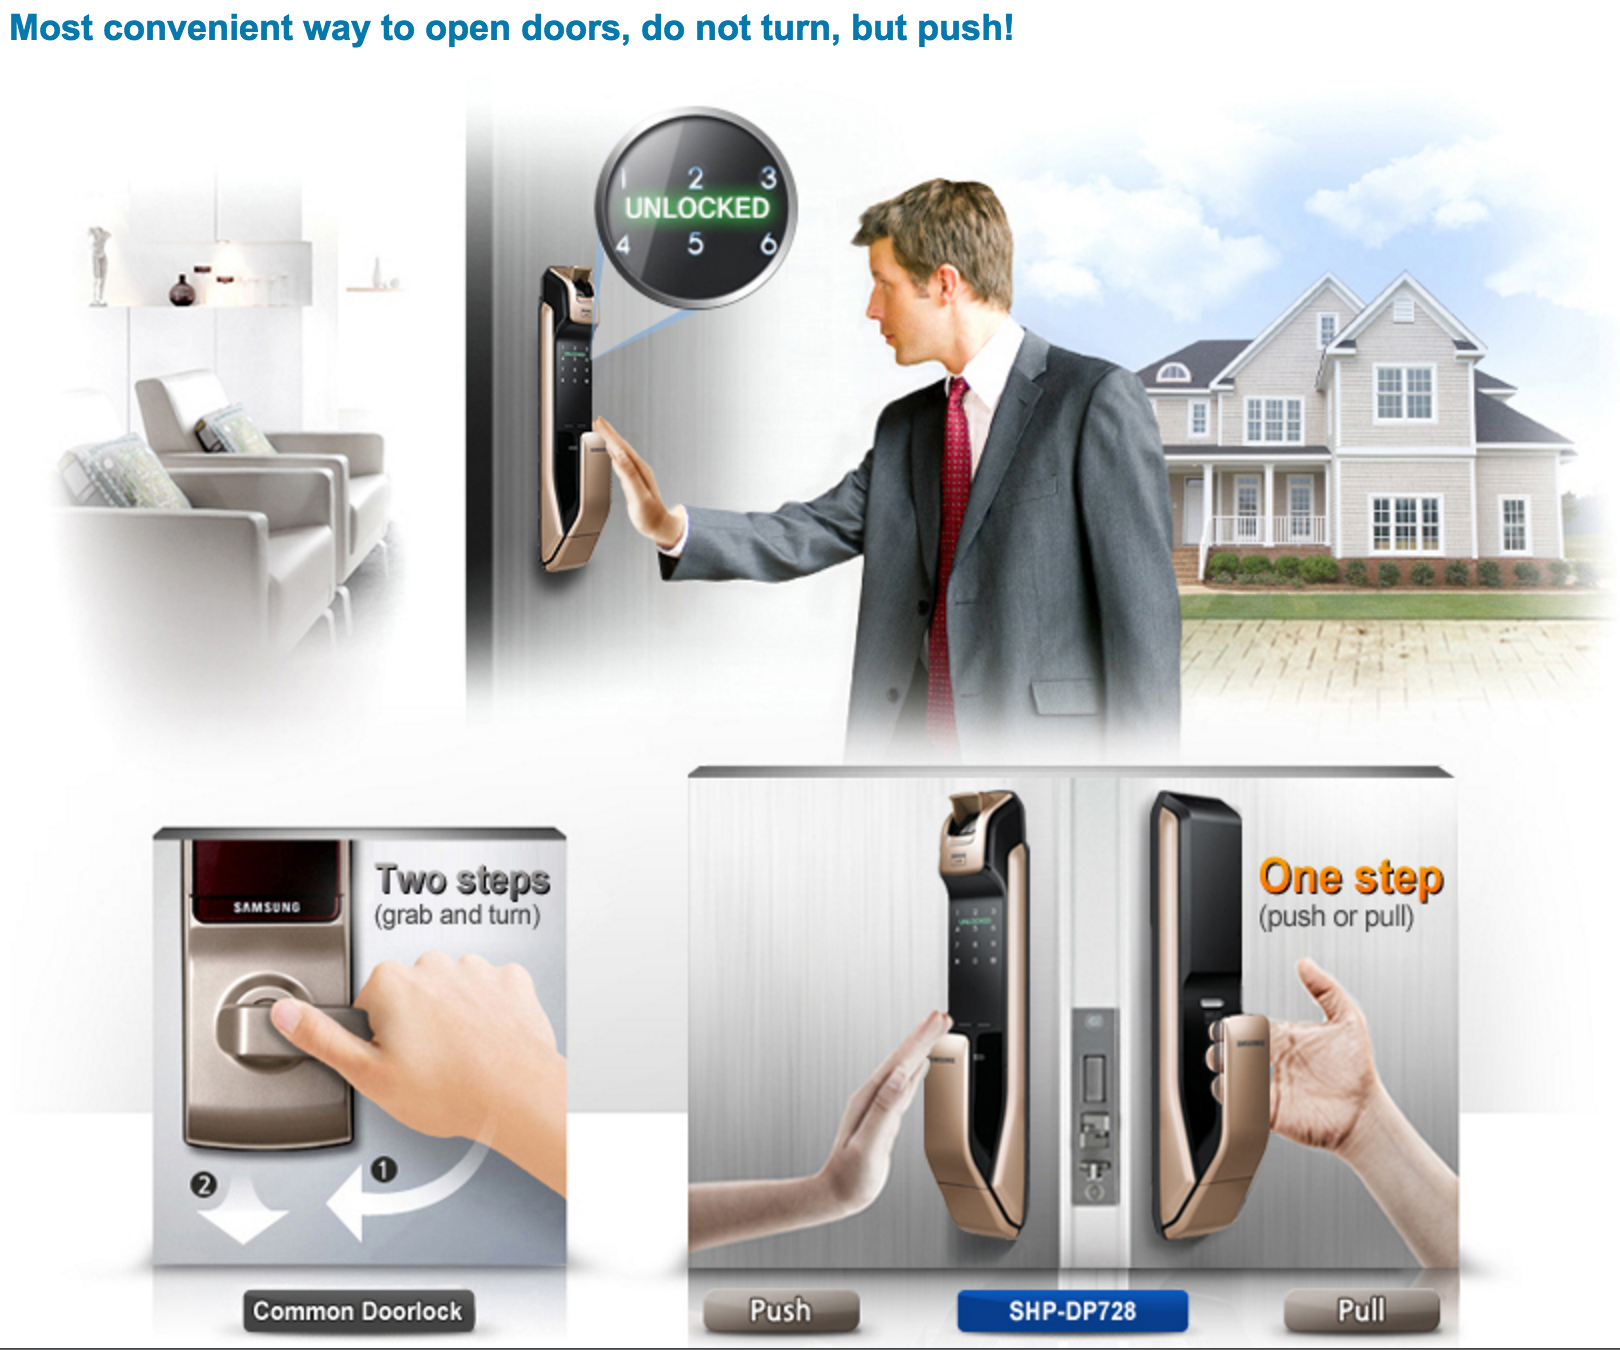 Samsung smart doorlock รุ่น SHP-DP728 เป็นกลอนประตูดิจิตอล digital door lock New Push/Pull Pin+RFID/NFC+Biometric/Finger scan+Key